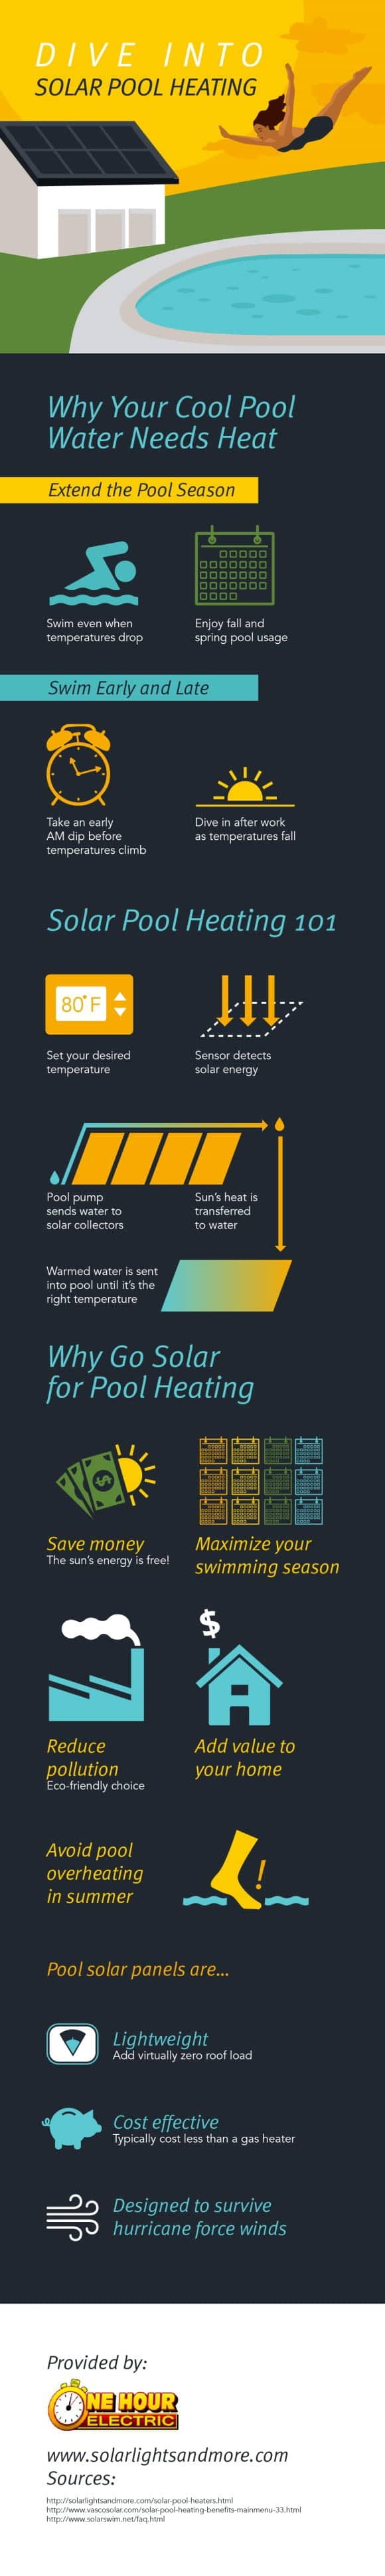 Infographic on Solar Pool Heating by Solar Lights & More